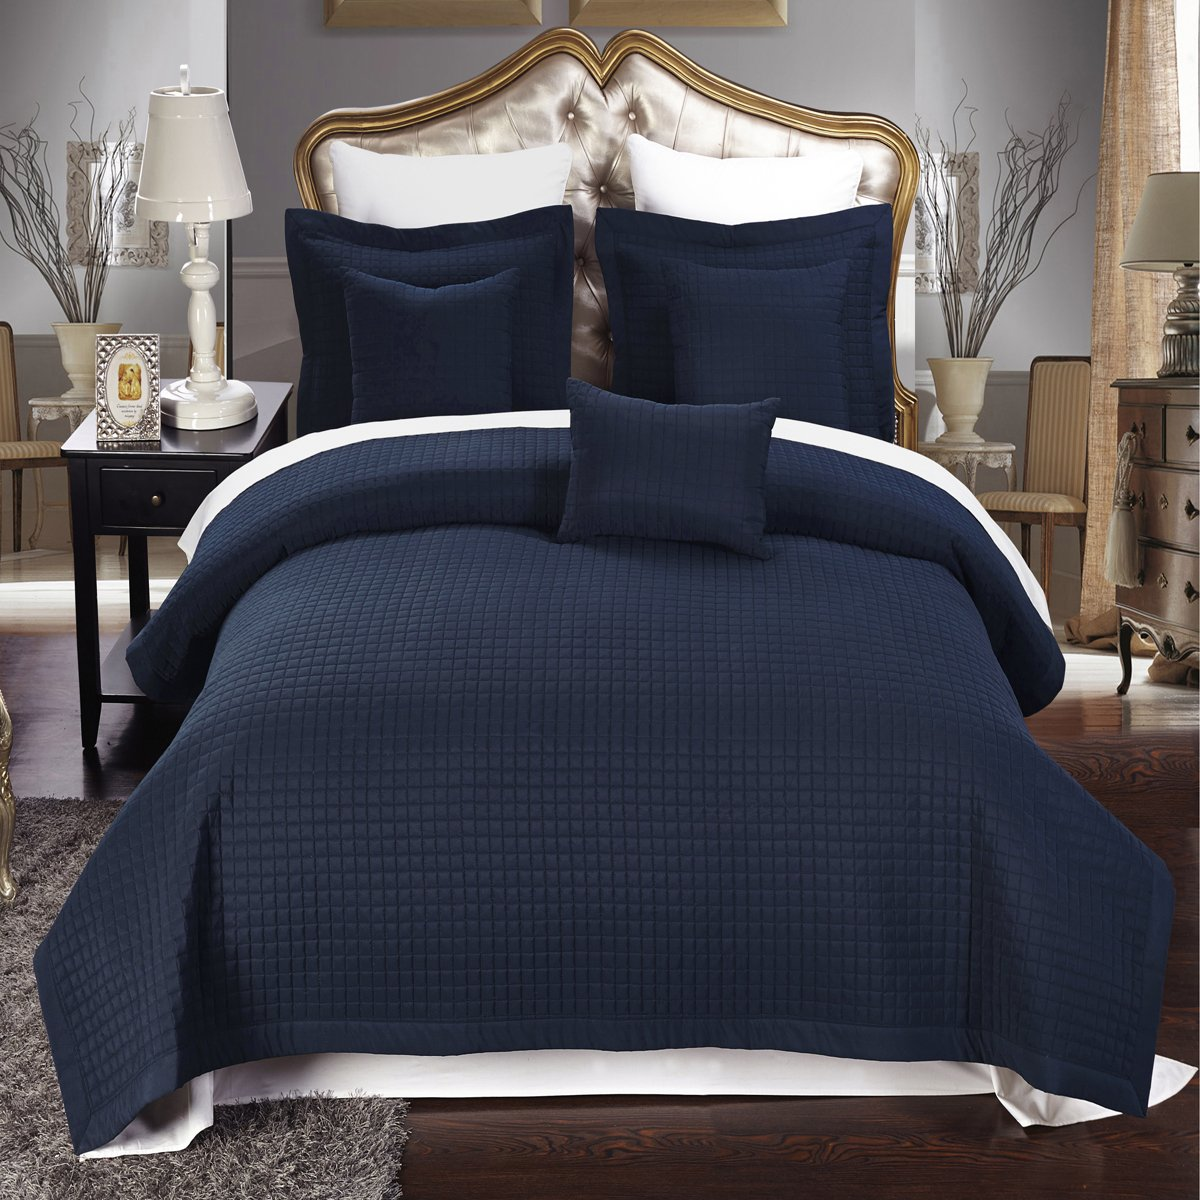 Amazon.com: Full / Queen size Navy Coverlet 3pc set, Luxury ... : quilts and coverlets queen size - Adamdwight.com